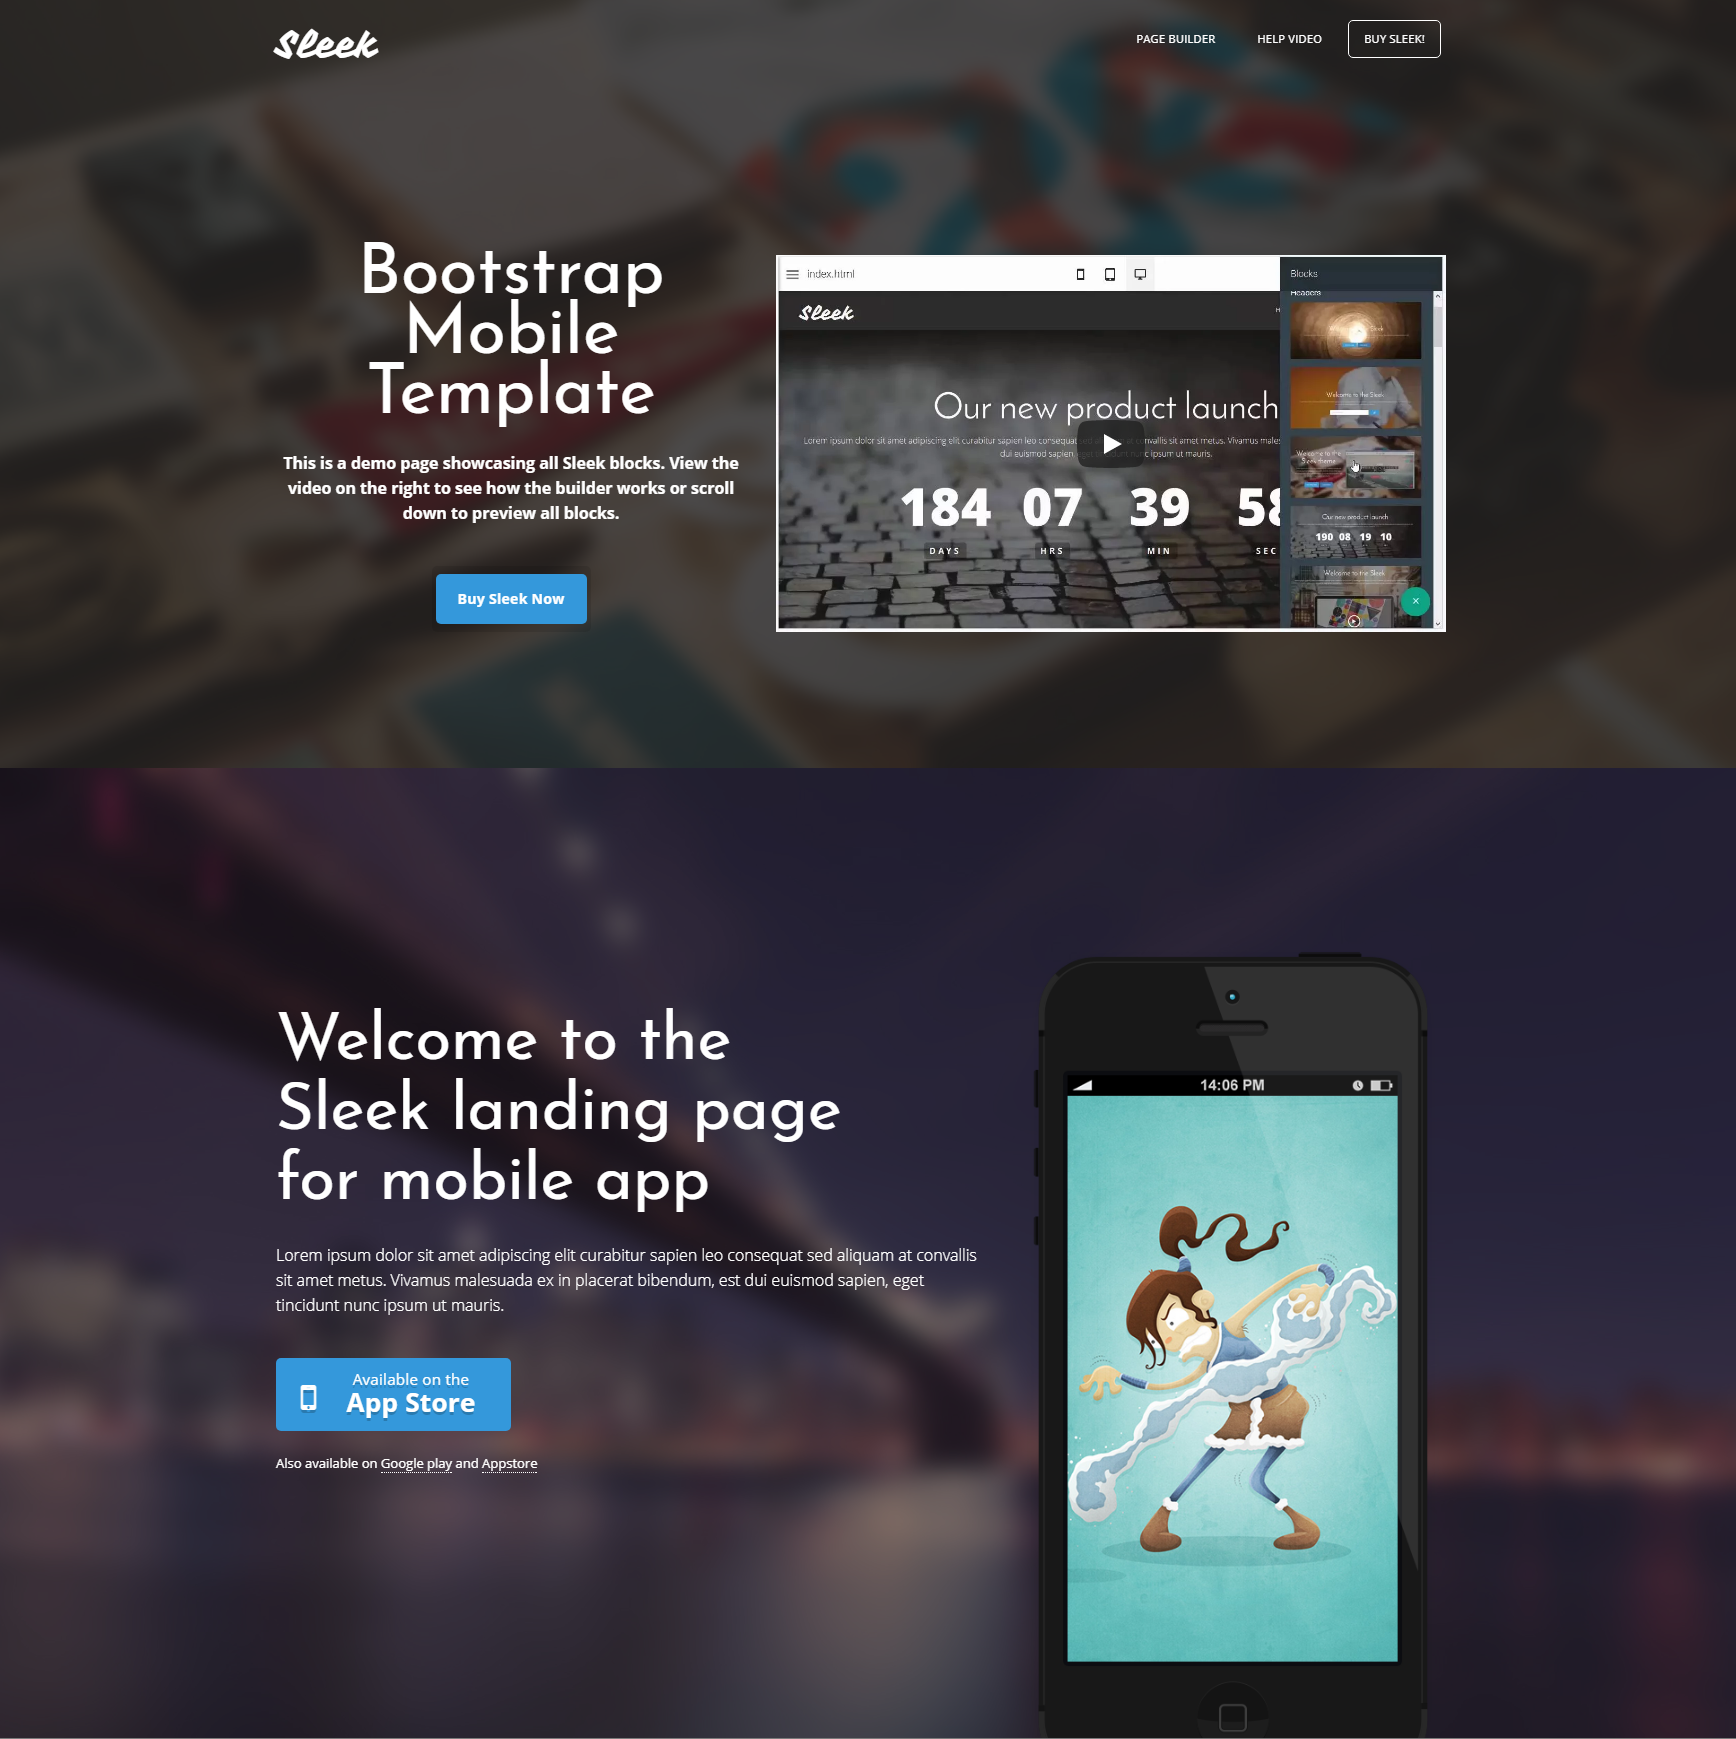 Free Download Bootstrap Mobile Templates